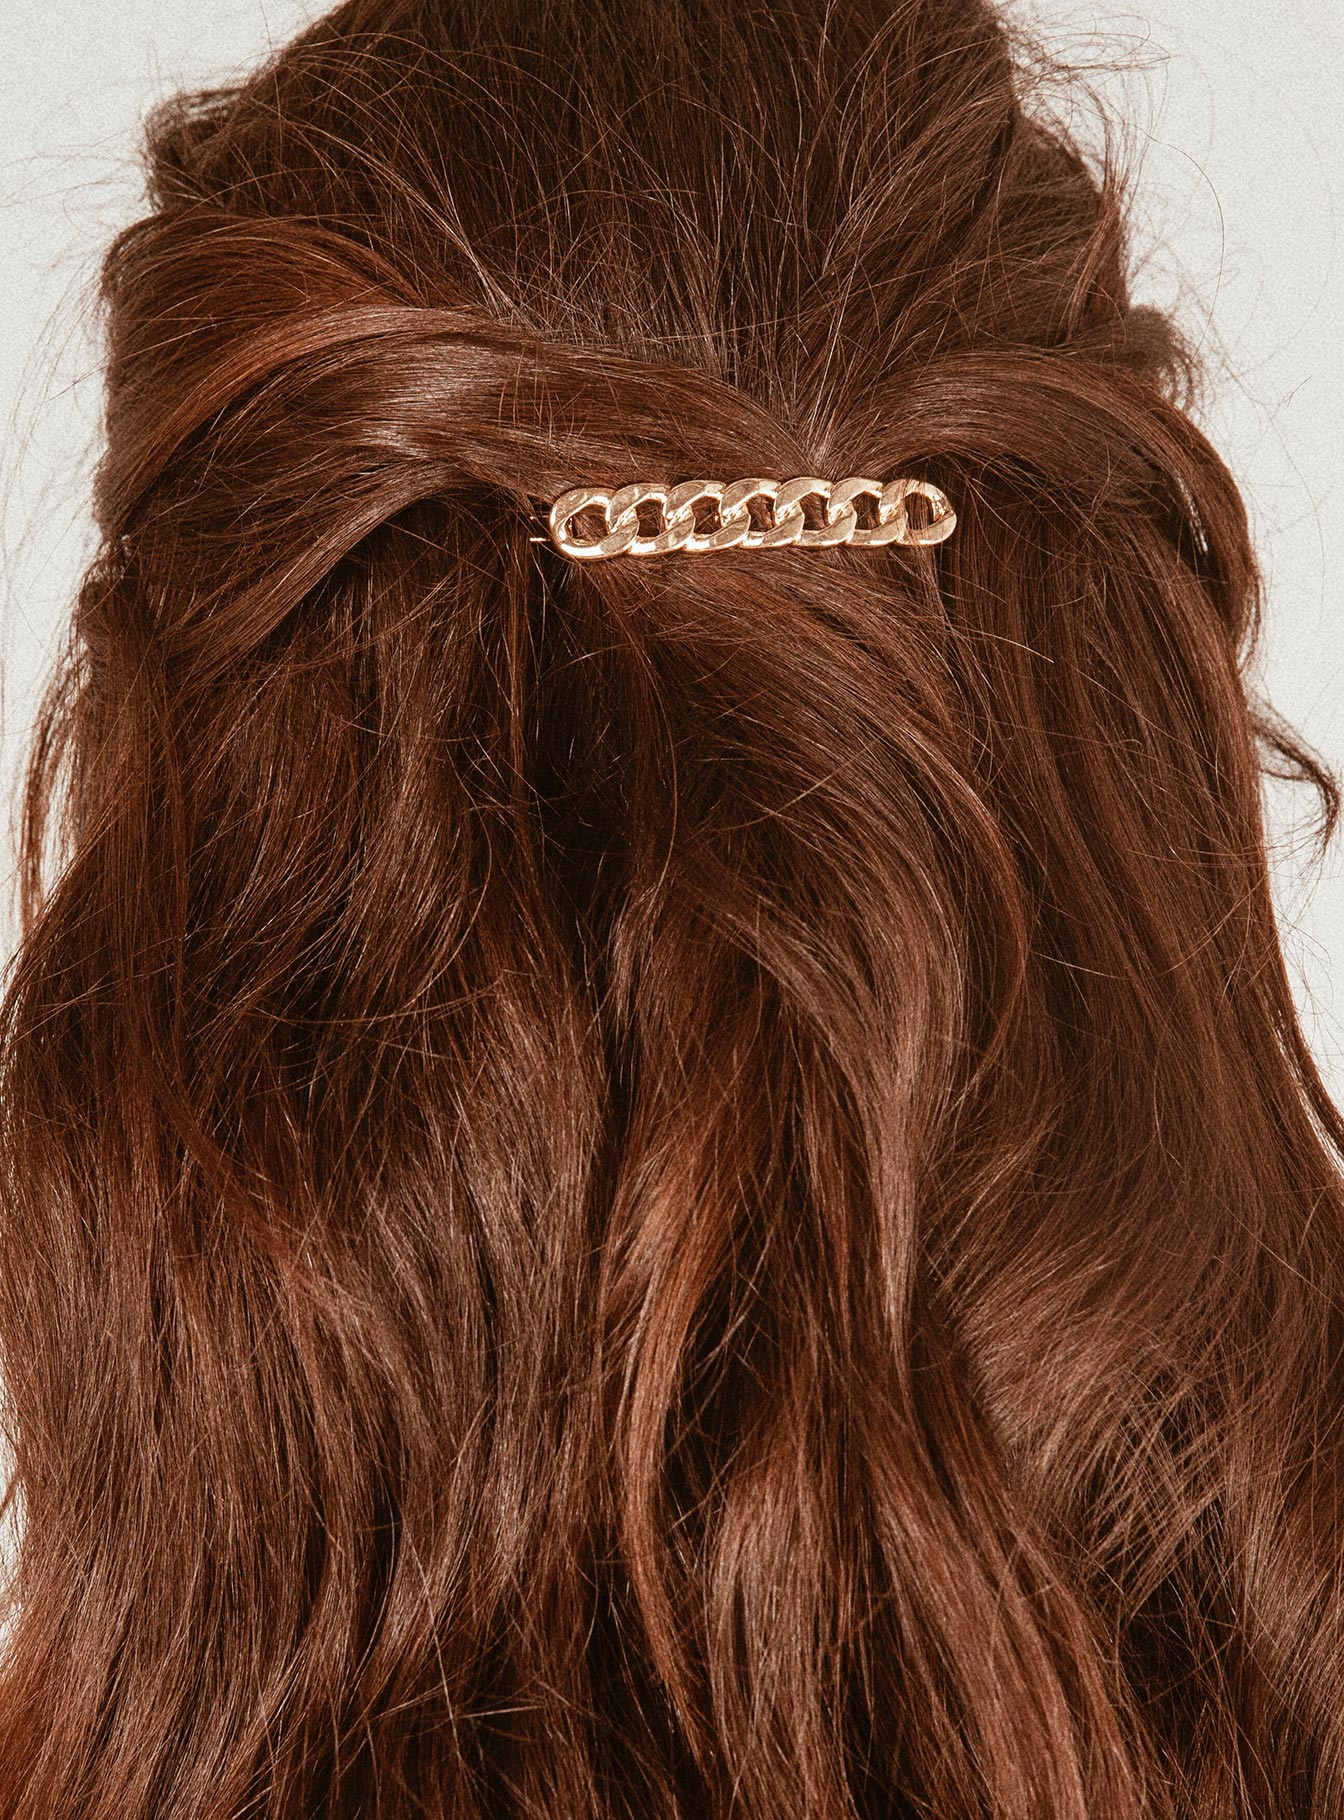 The Chainlink Hair Clip